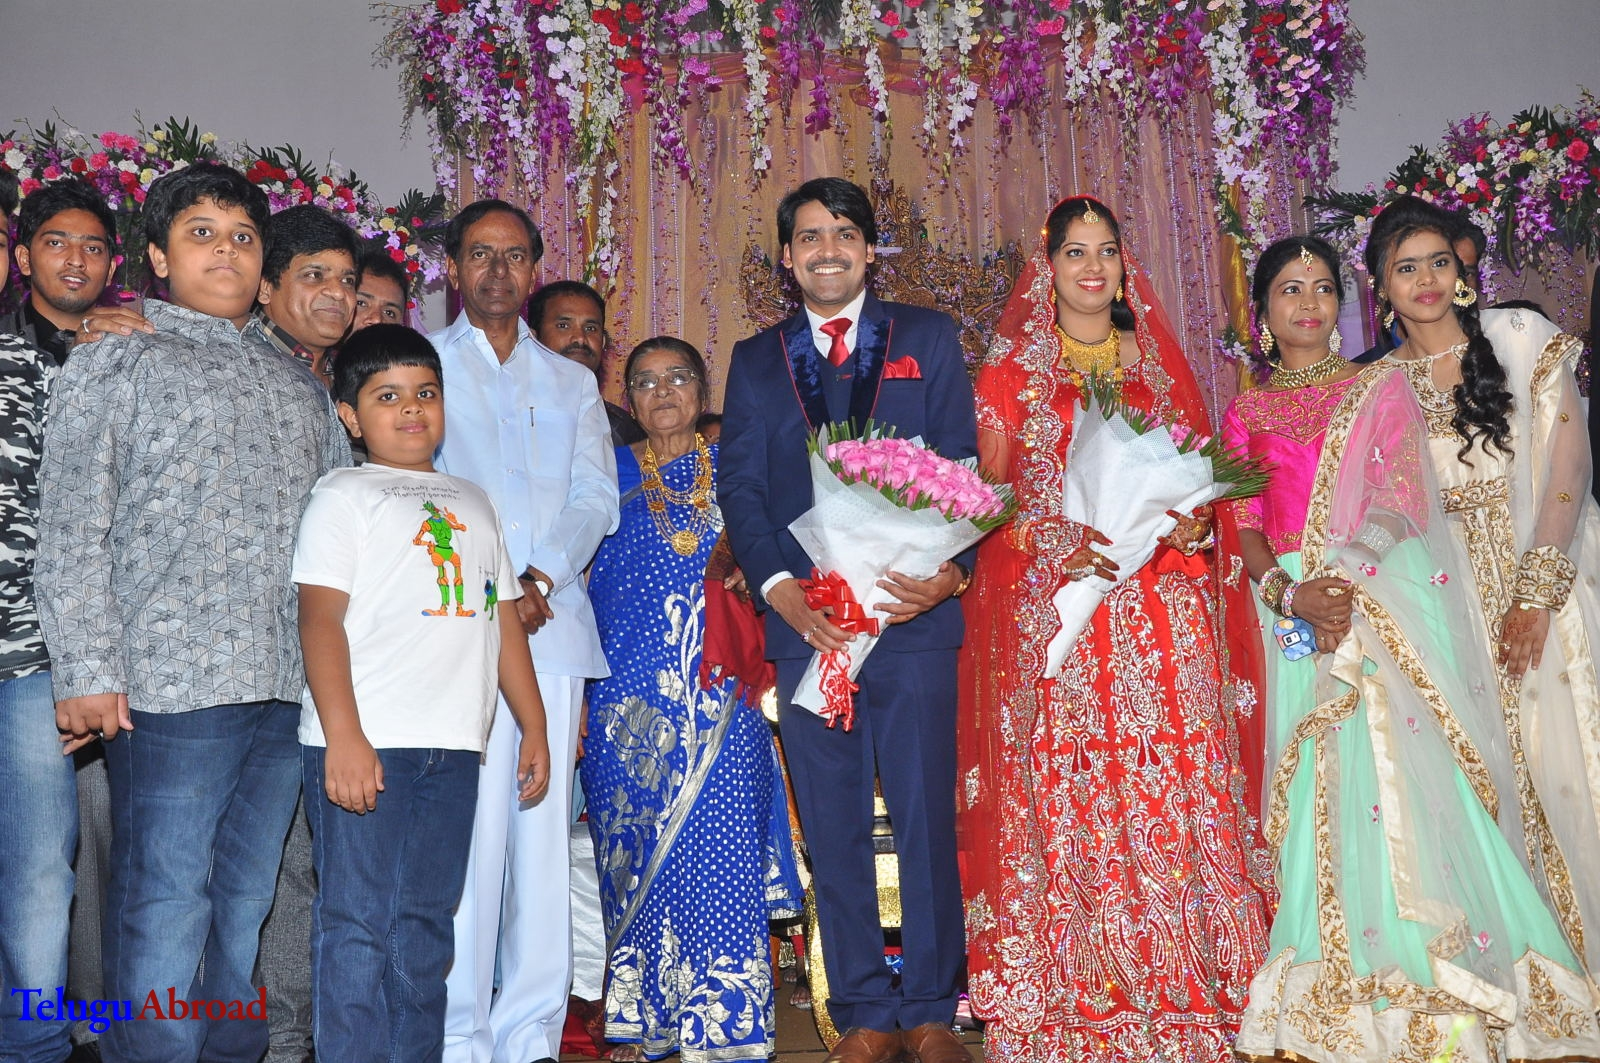 Ali brother Khayumm reception-27.JPG